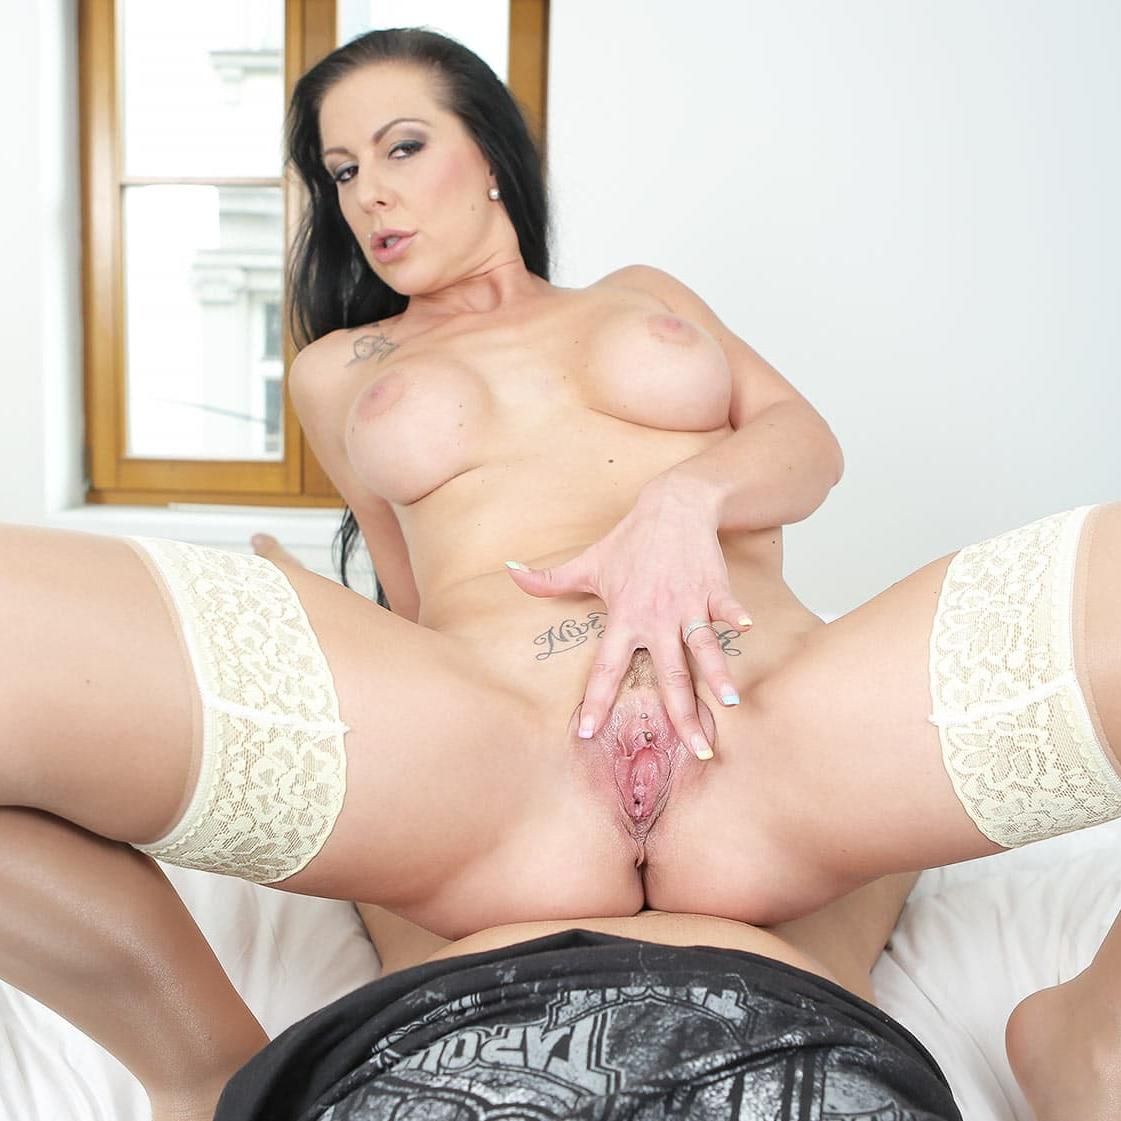 German slut Texas Patti rides cock with her pierced pussy